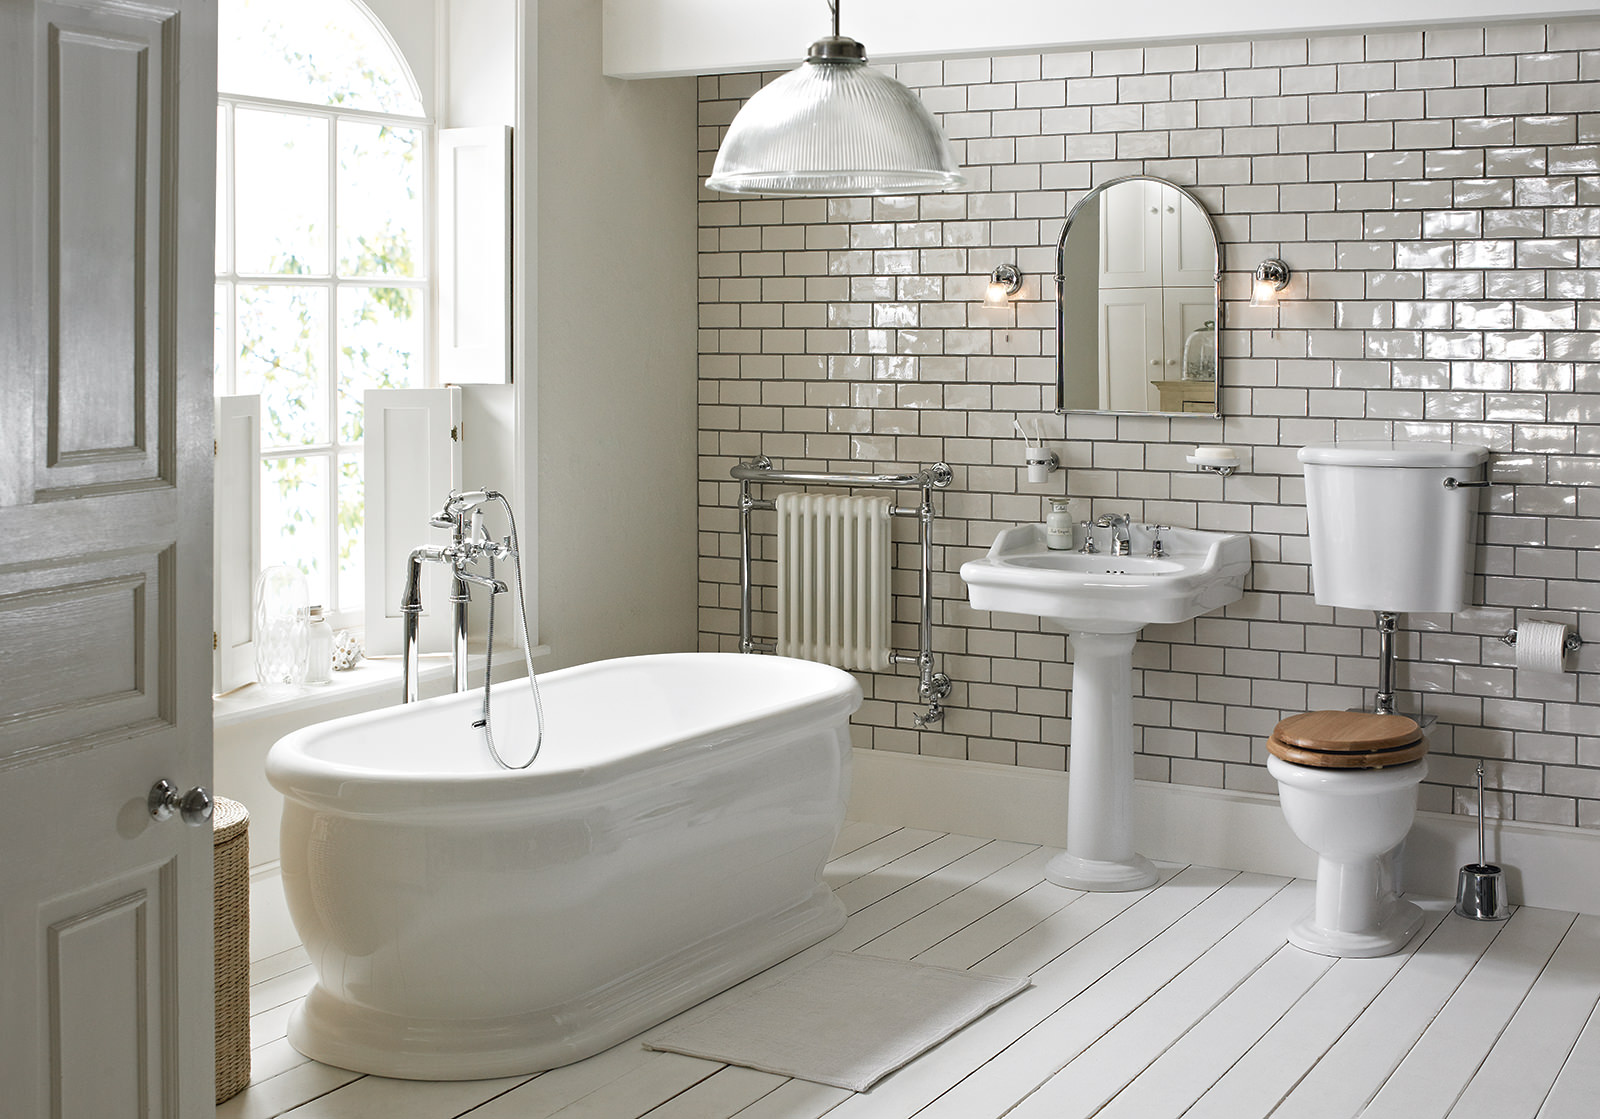 Heritage Victoria Low Level Wc And Cistern With Flush Pack - Badkamer Vloer En Wandtegels Hetzelfde